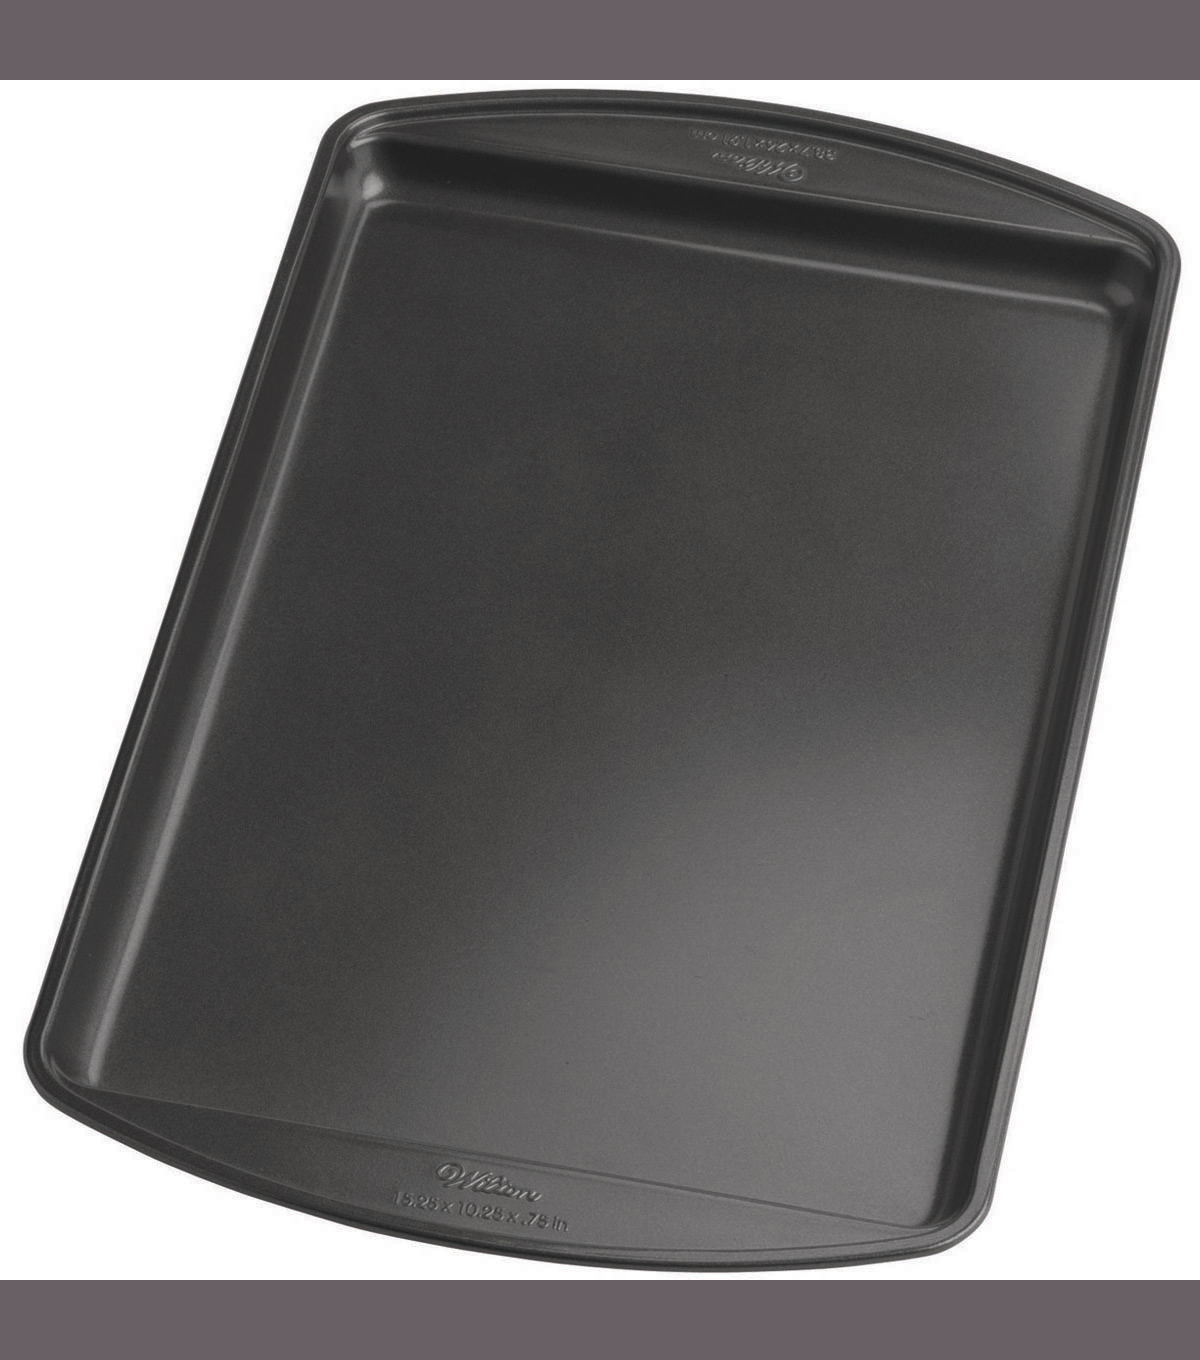 Wilton Perfect Results 15.25\u0022X10.25\u0022 Medium Cookie Pan